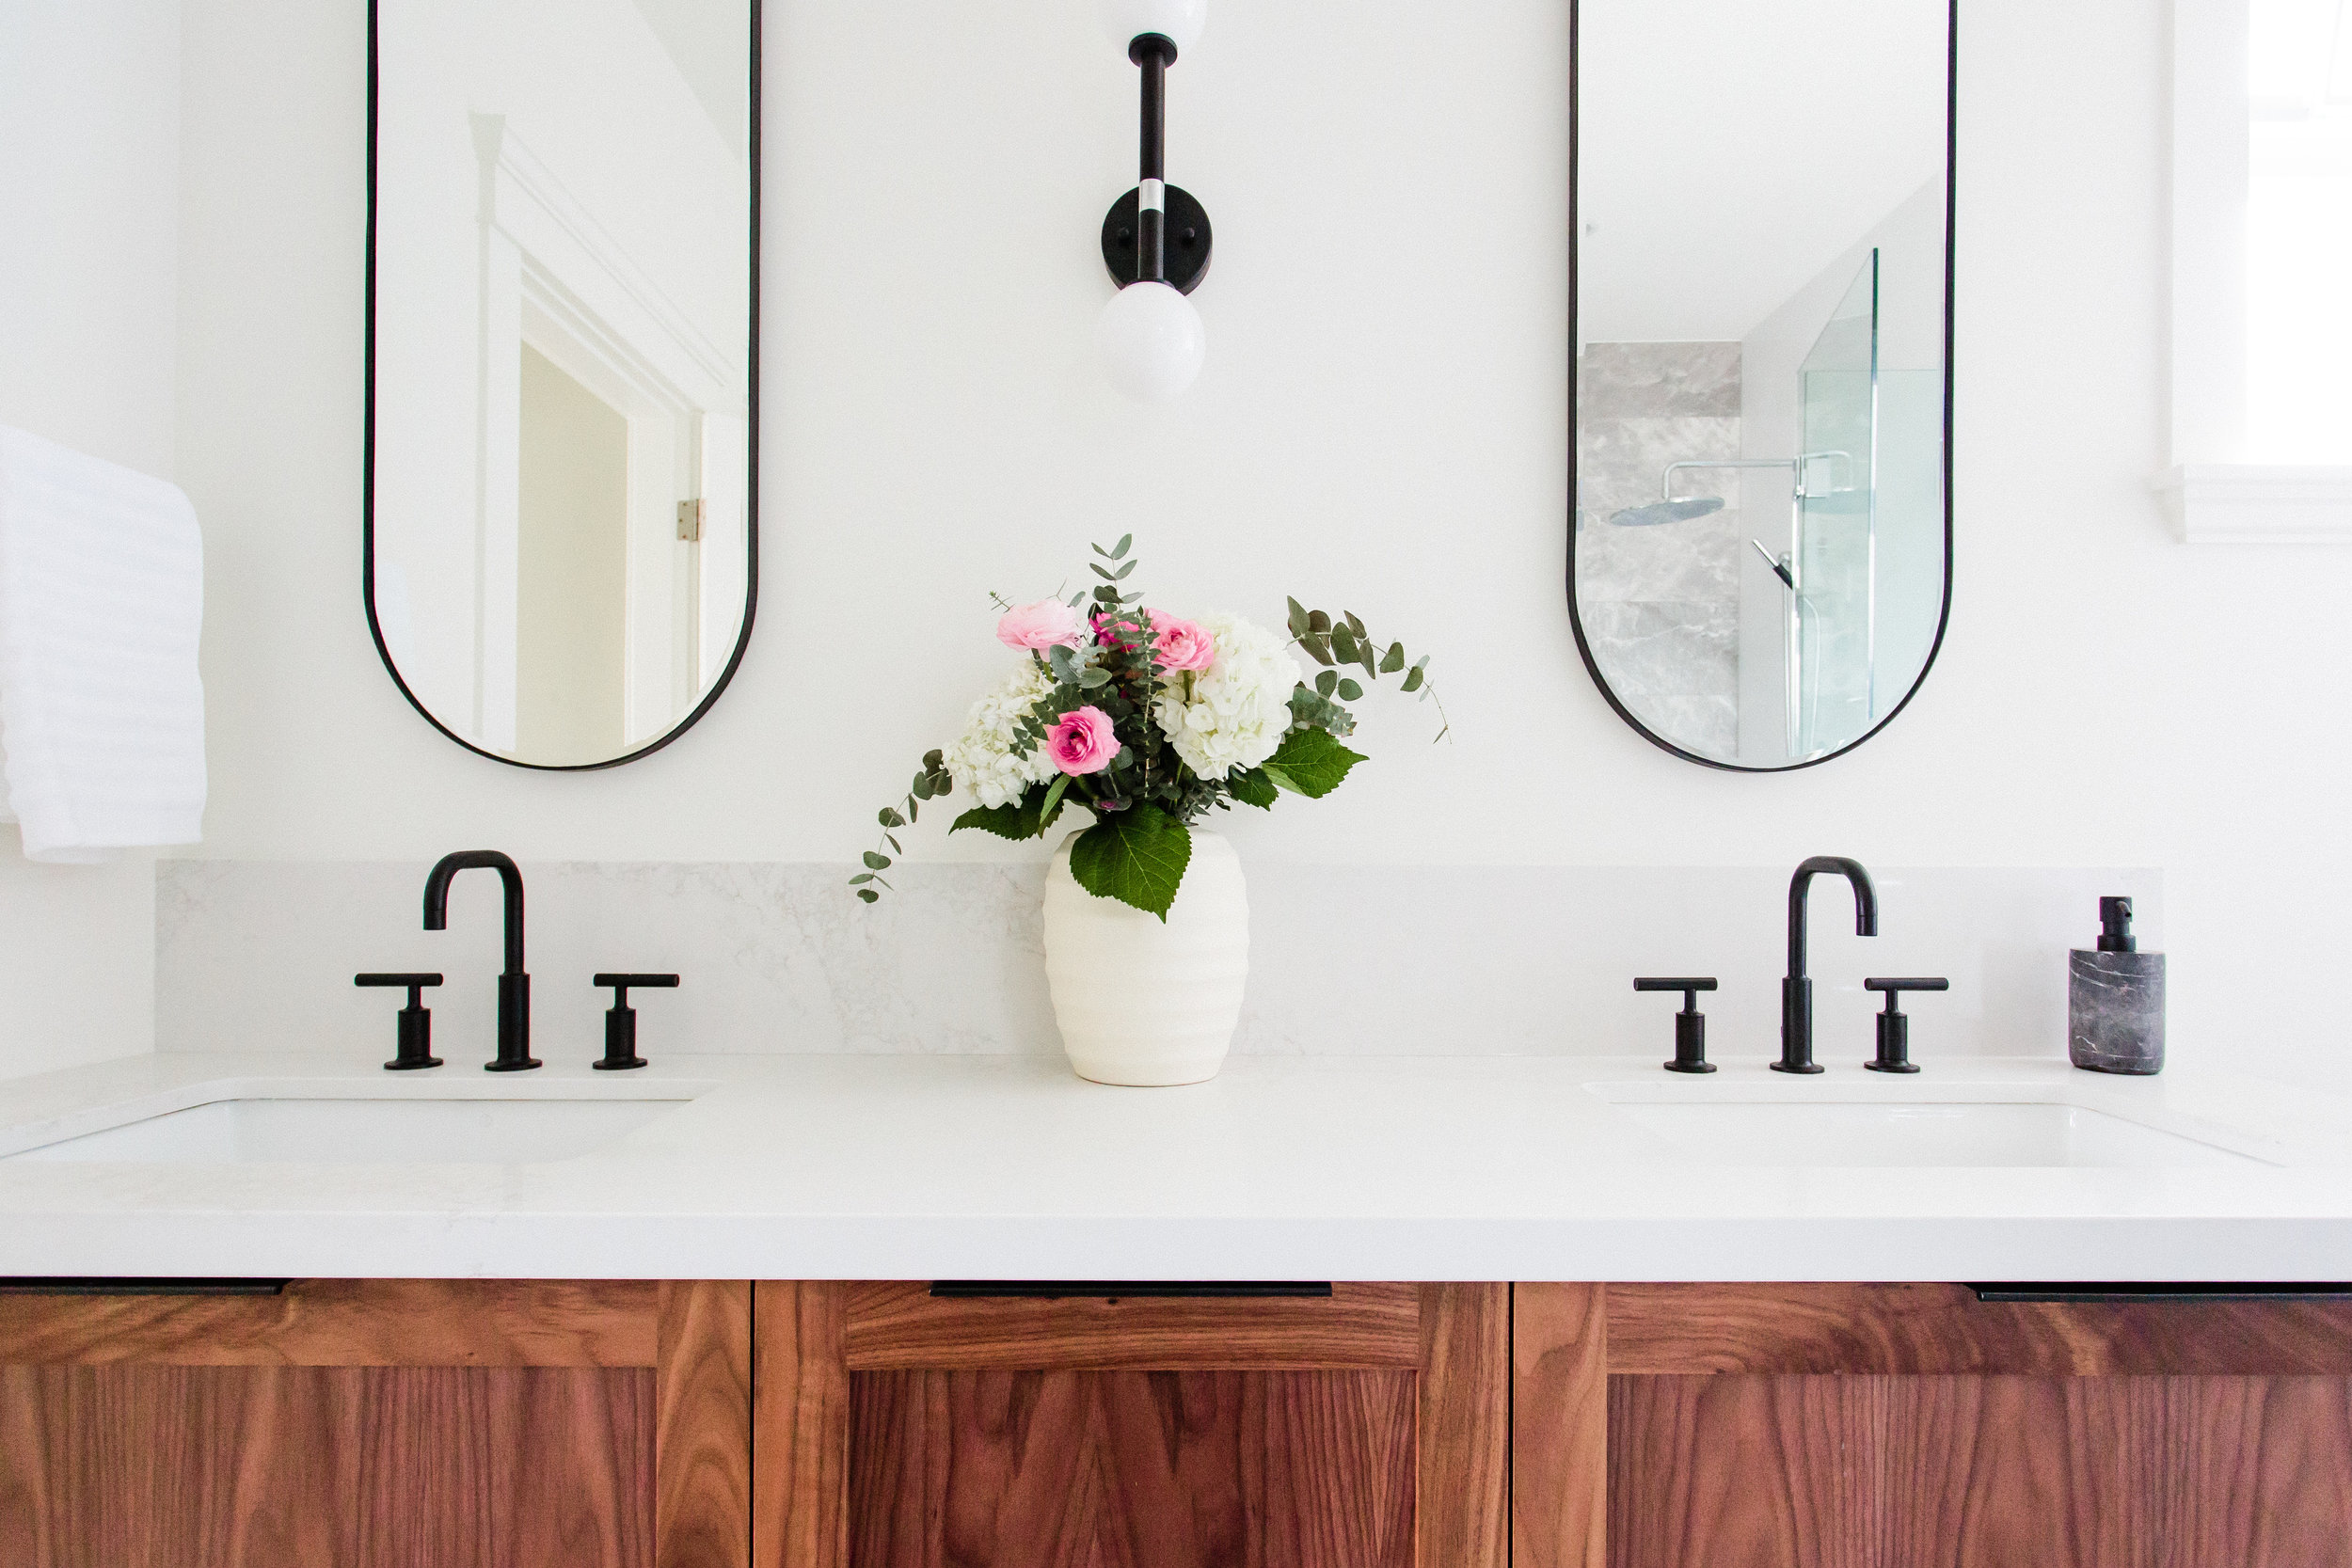 Stunning marble meets vibrant walnut in the master bathroom while thick quartz countertops cap the kitchen cabinets.